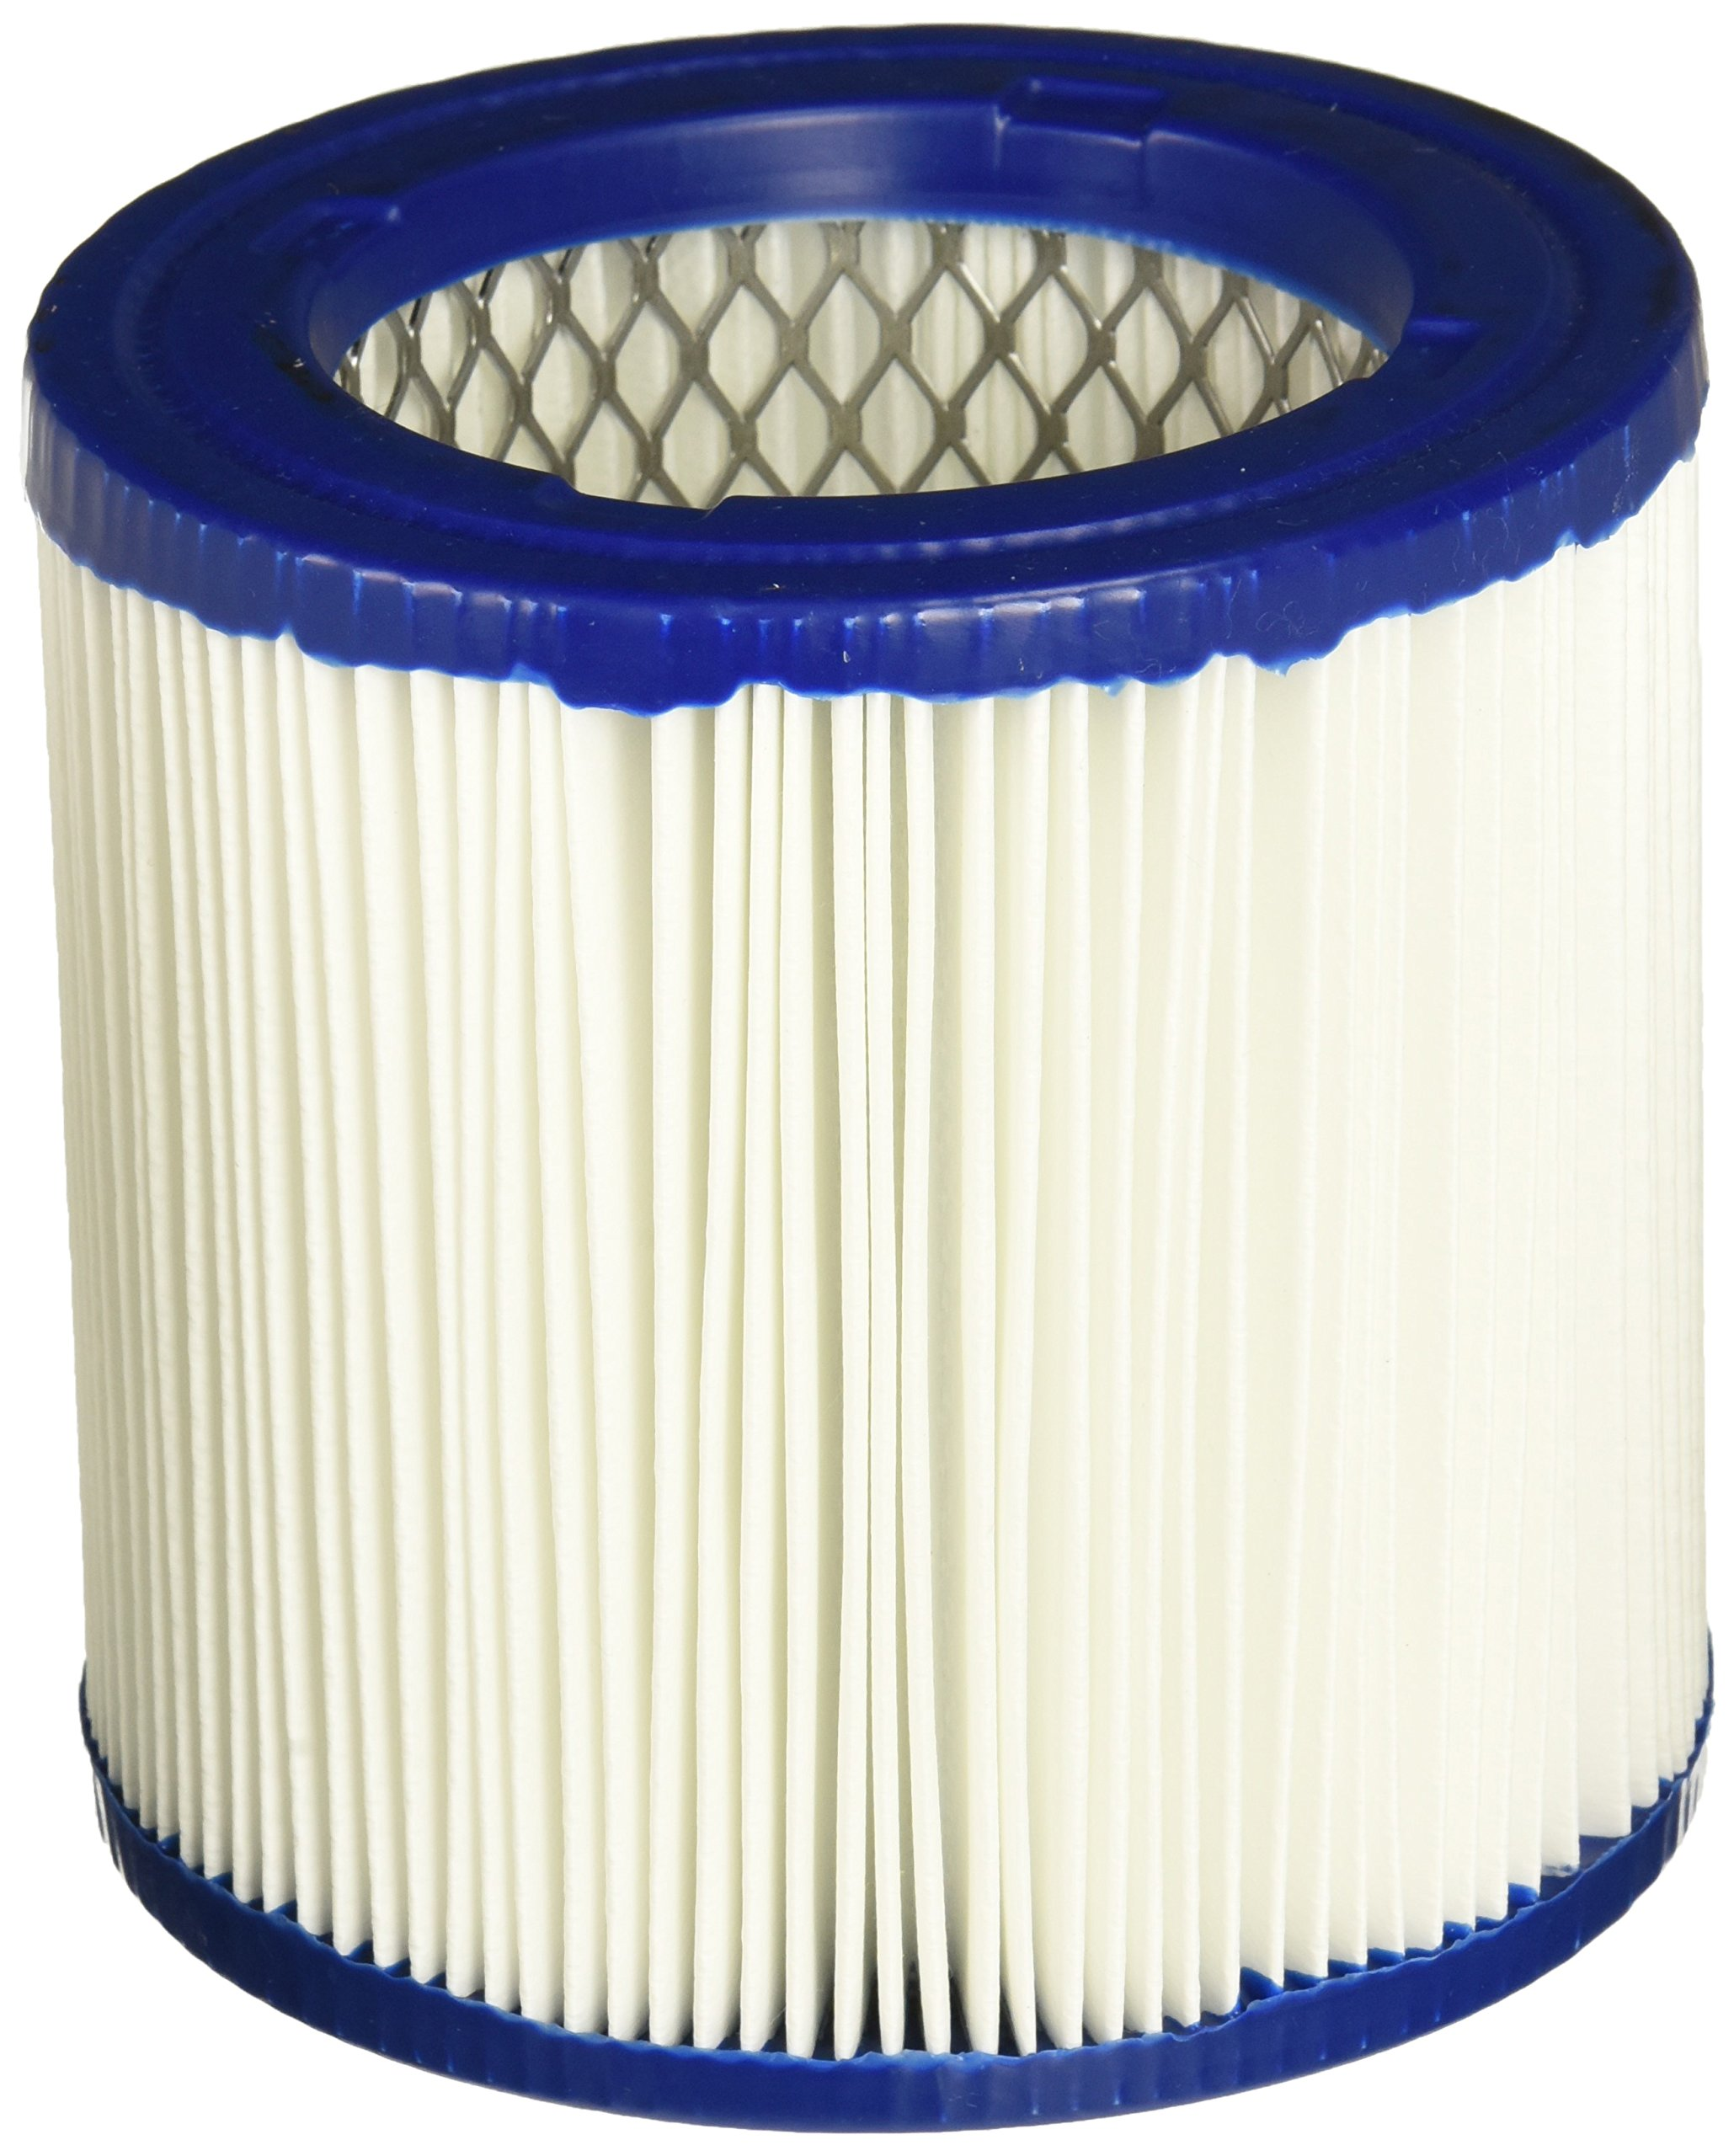 Shop-Vac 9032900 Genuine Ash Vacuum Cartridge Filter, Small, White by Shop-Vac